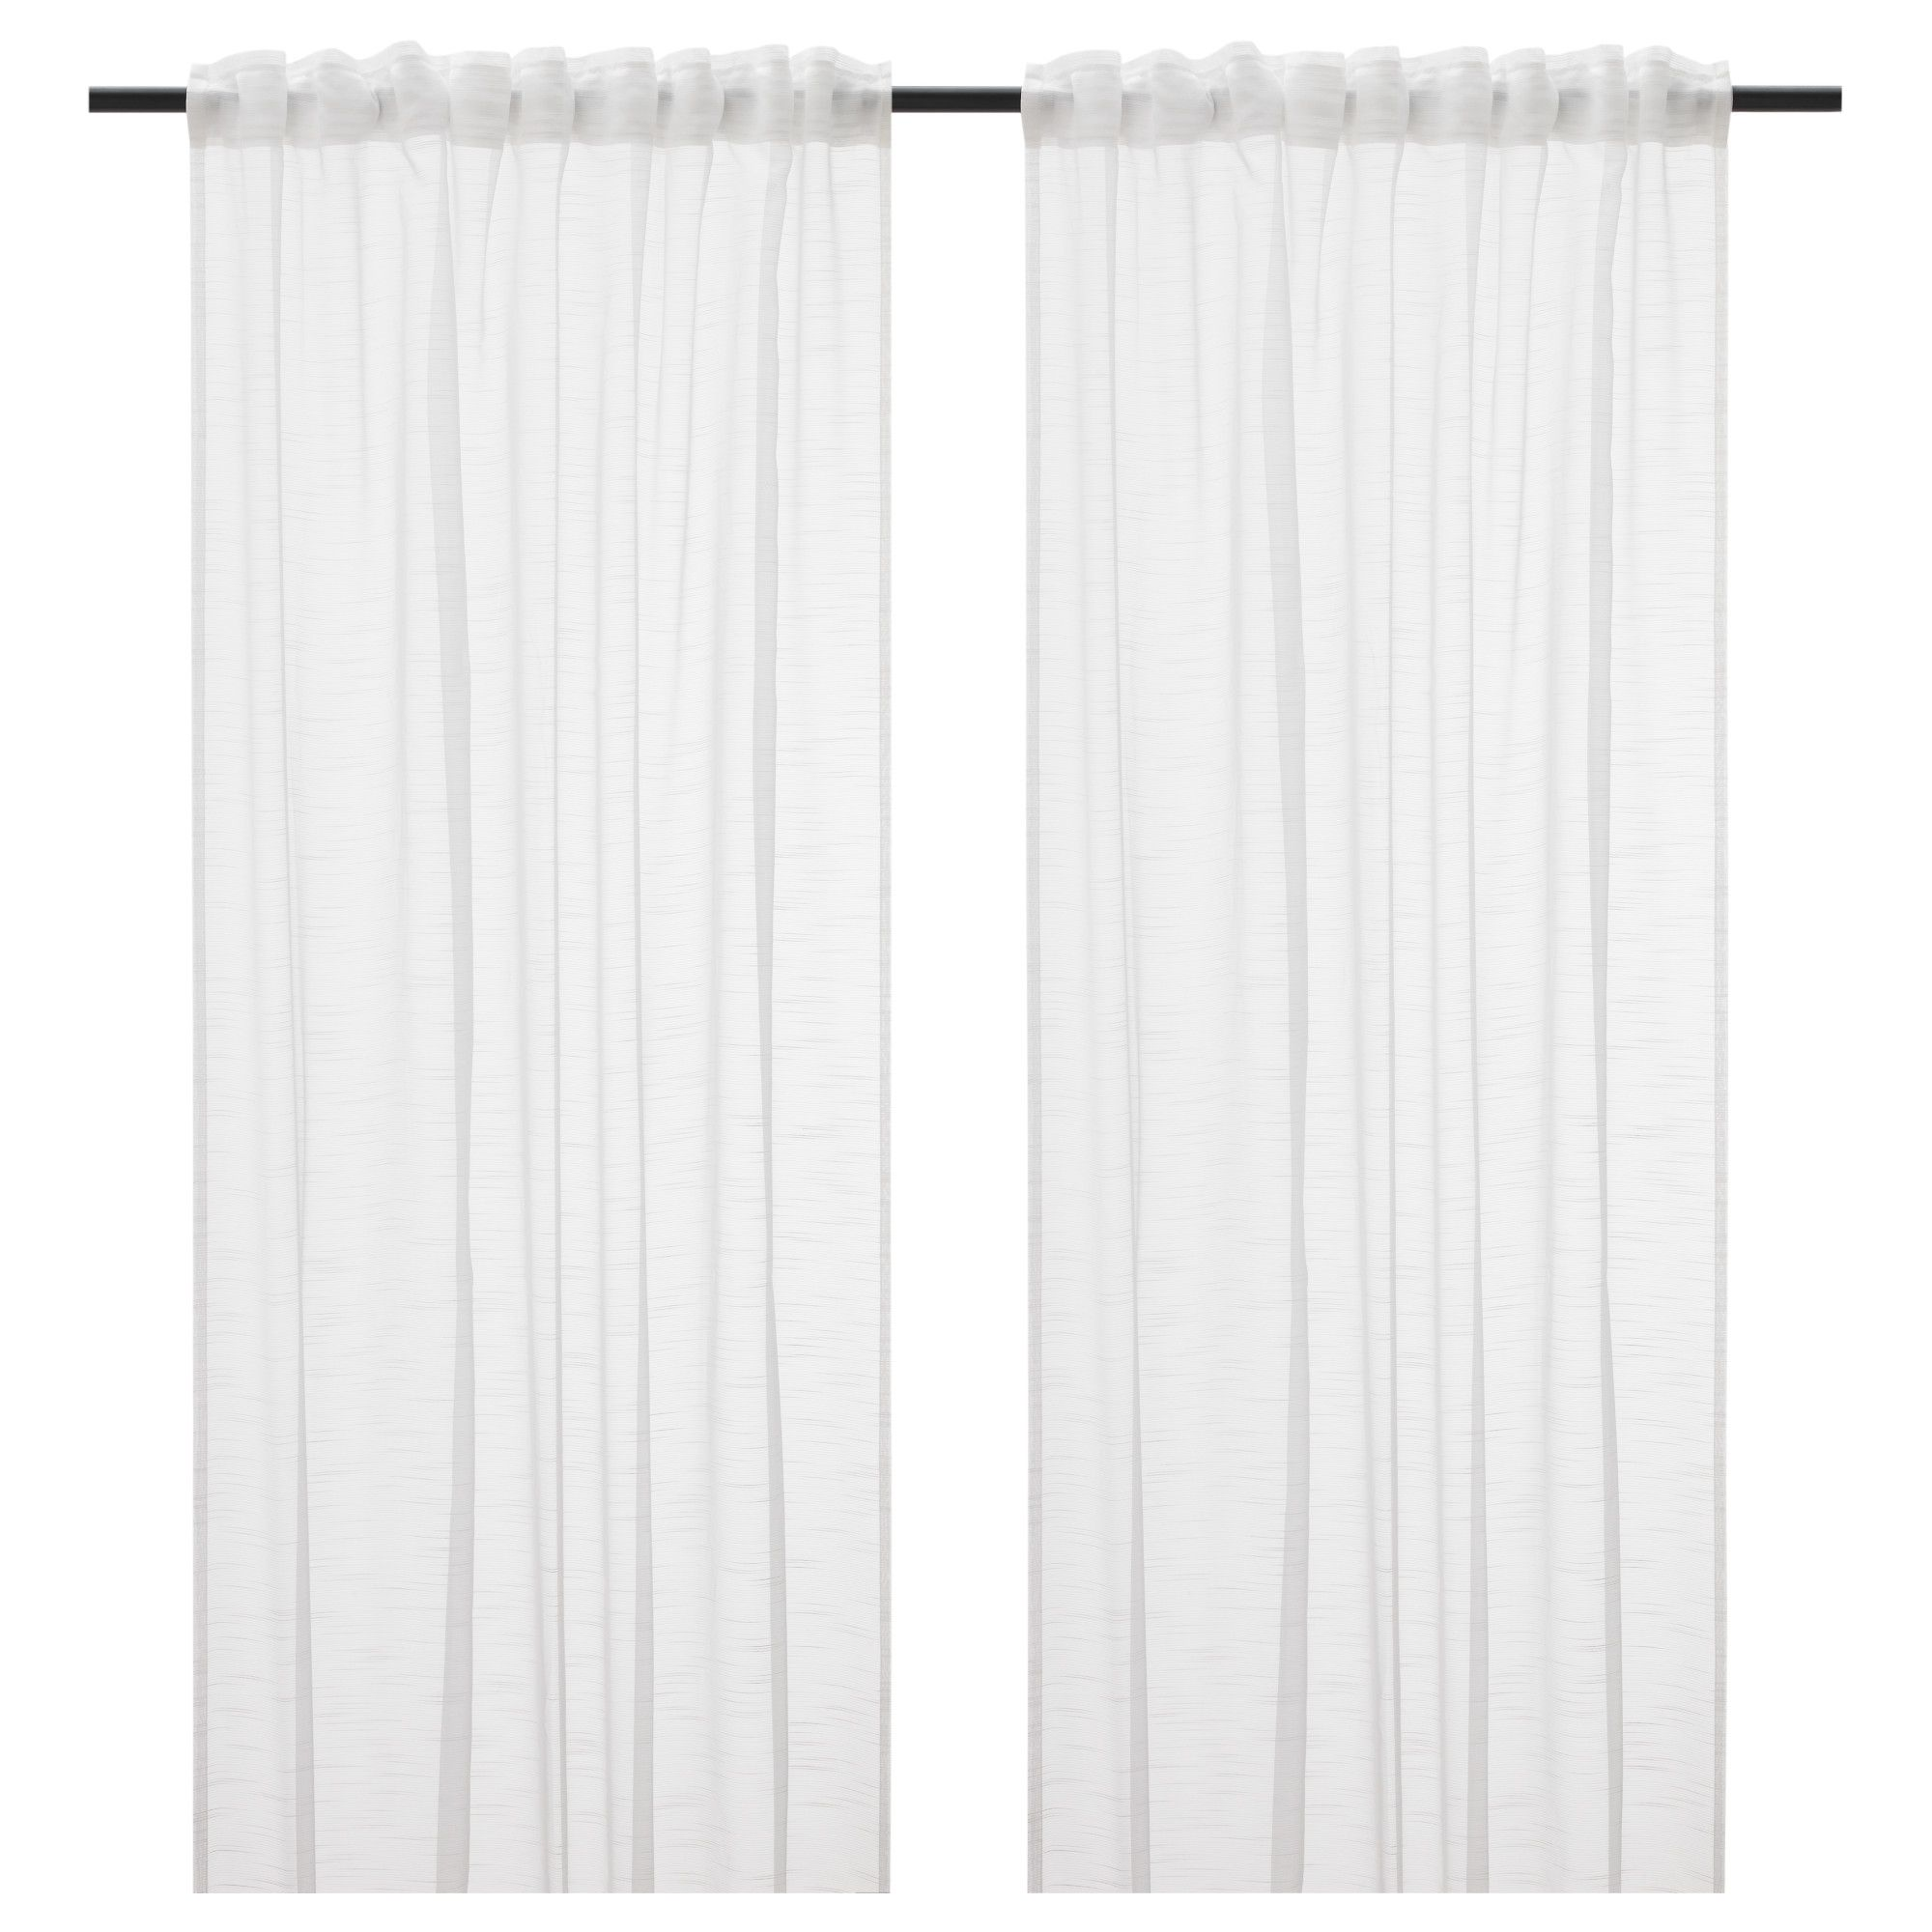 Gjertrud Visillo Par Blanco Sheer Curtains Curtains Ikea - Visillos Ikea